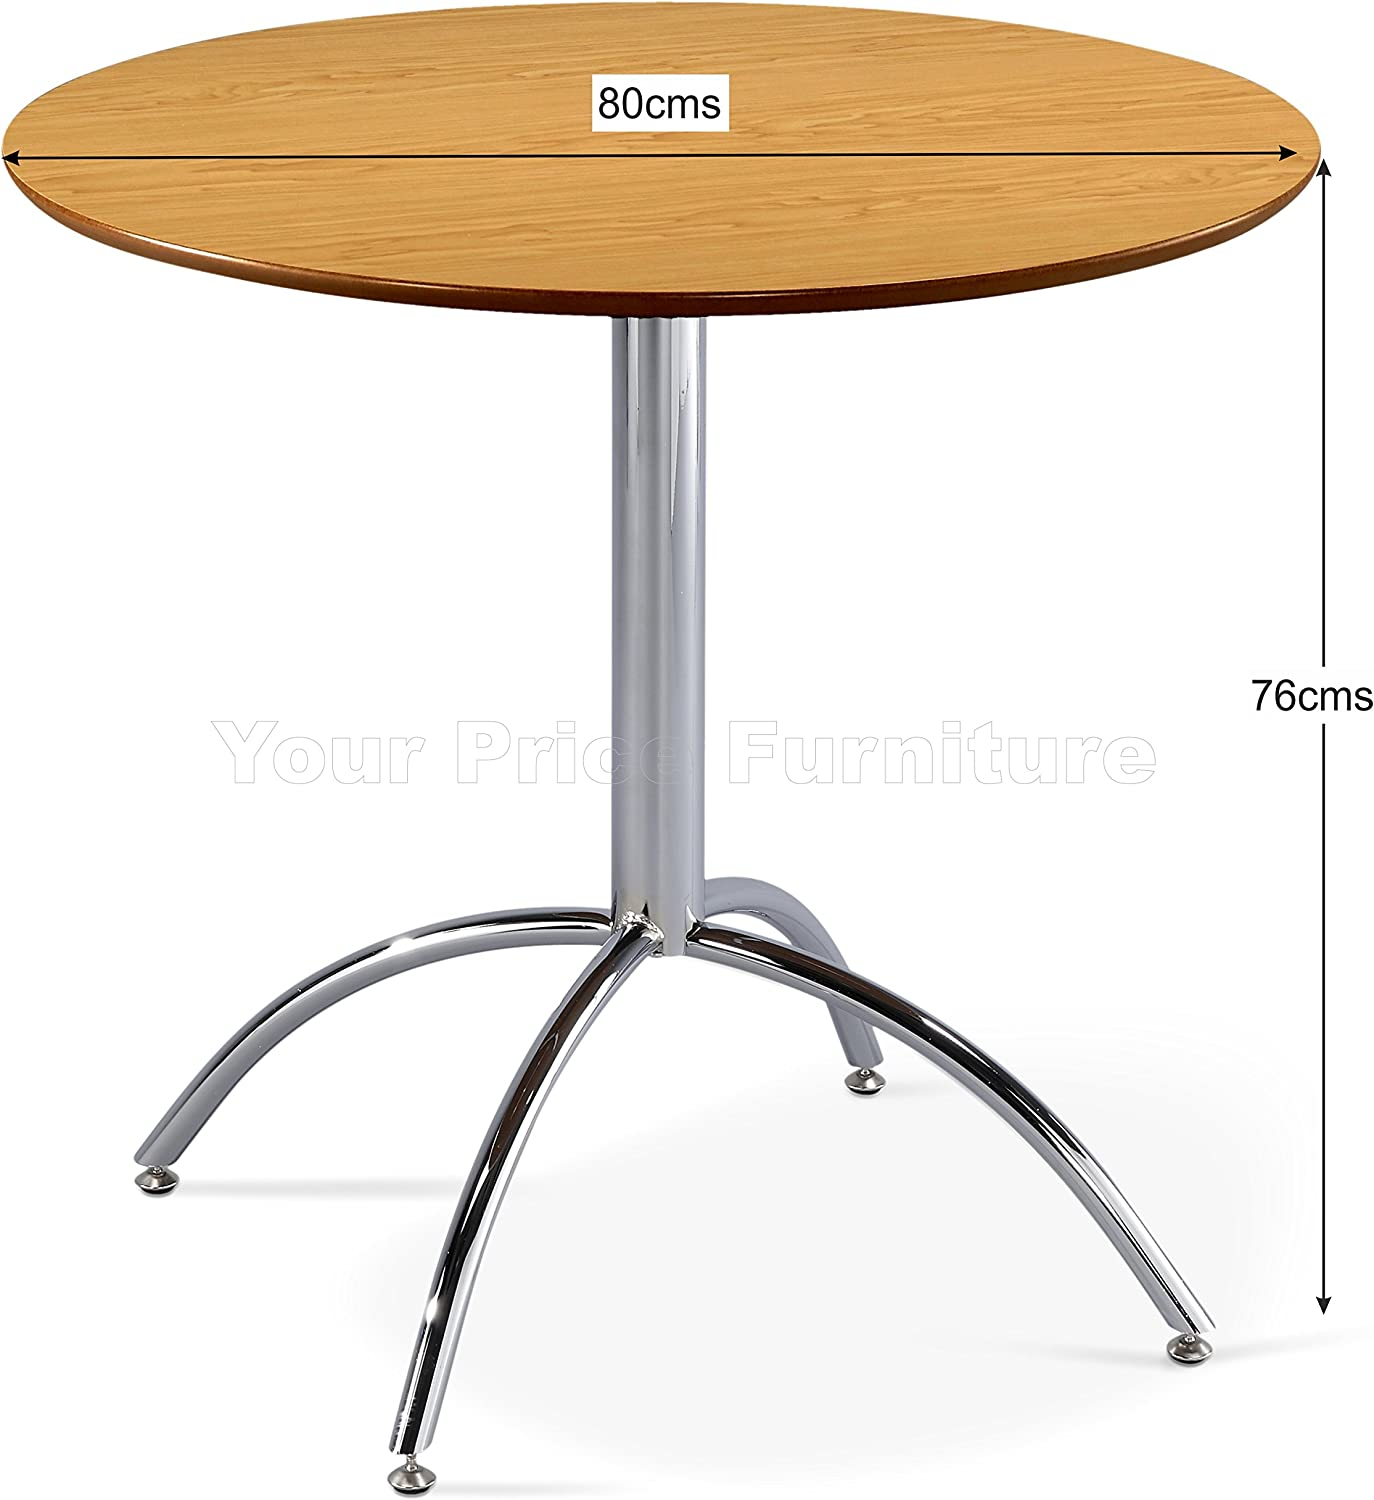 Kimberley Dining Table With Chrome Metal Legs - Kitchen Cafe Bistro Style Small Round Table Choice of White or Natural (White) Natural